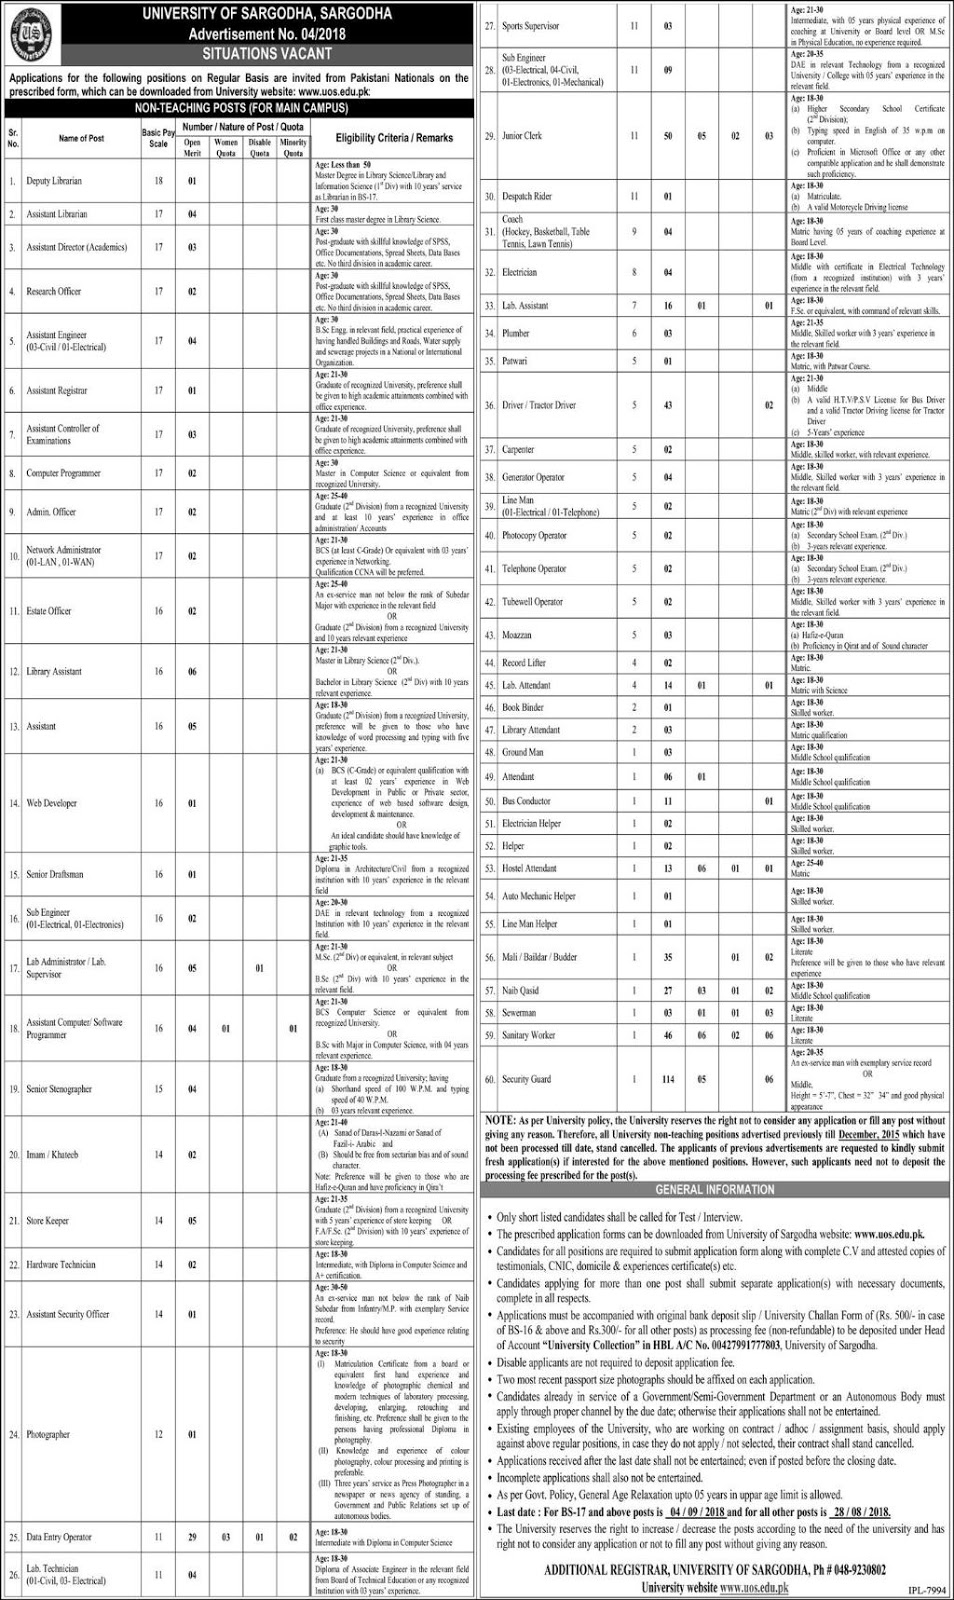 University Of Sargodha Jobs August 2018 Application Form Download